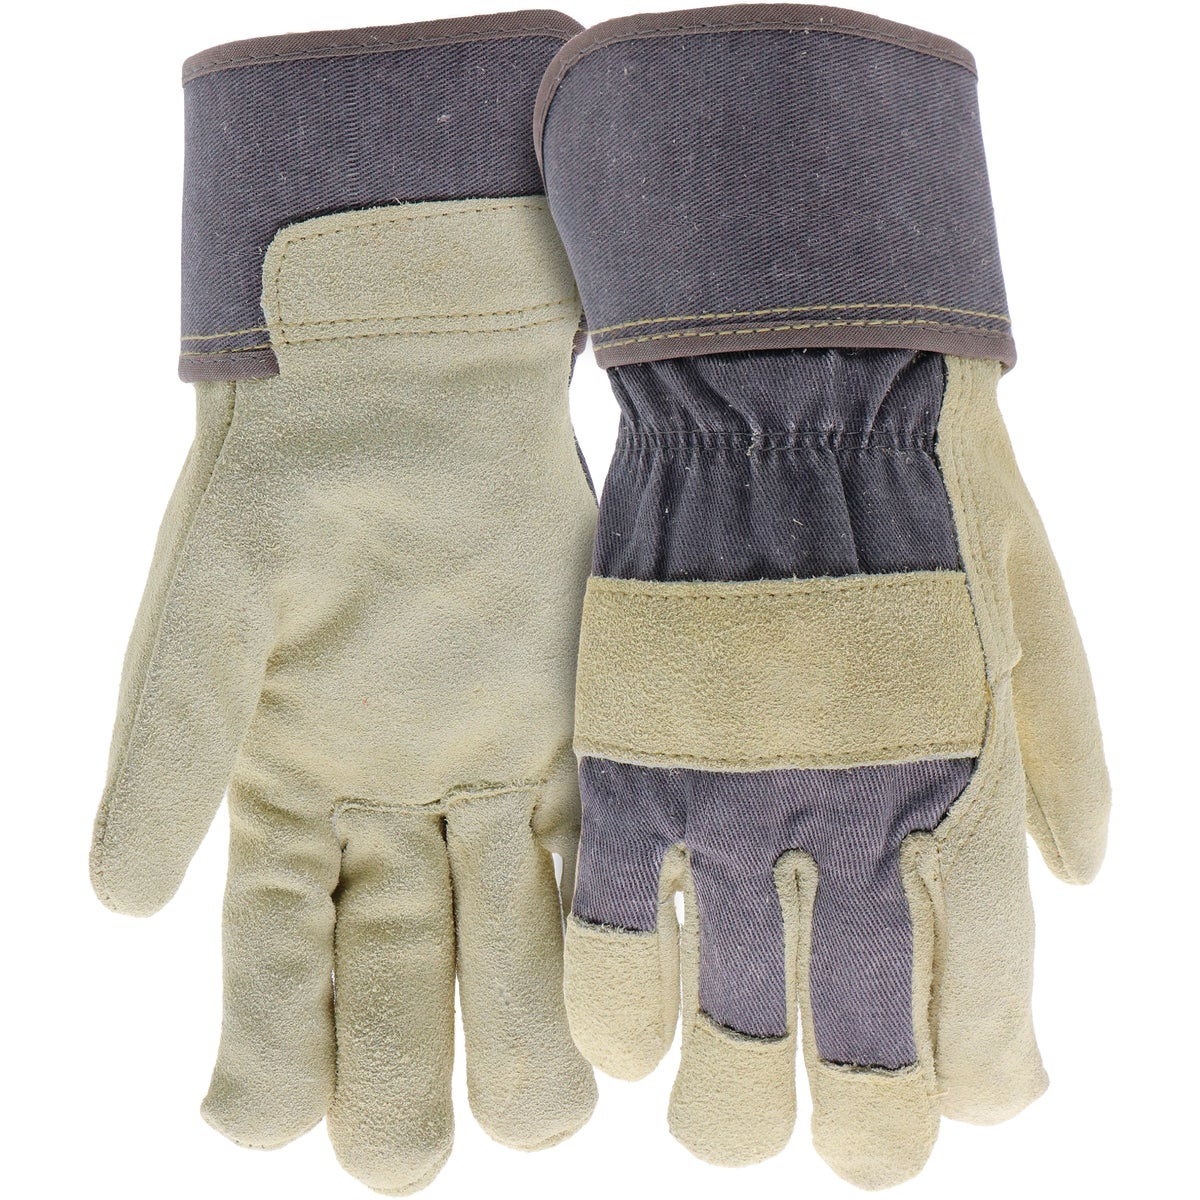 SML LADY LTHR PALM GLOVE - 4113S by Wells Lamont